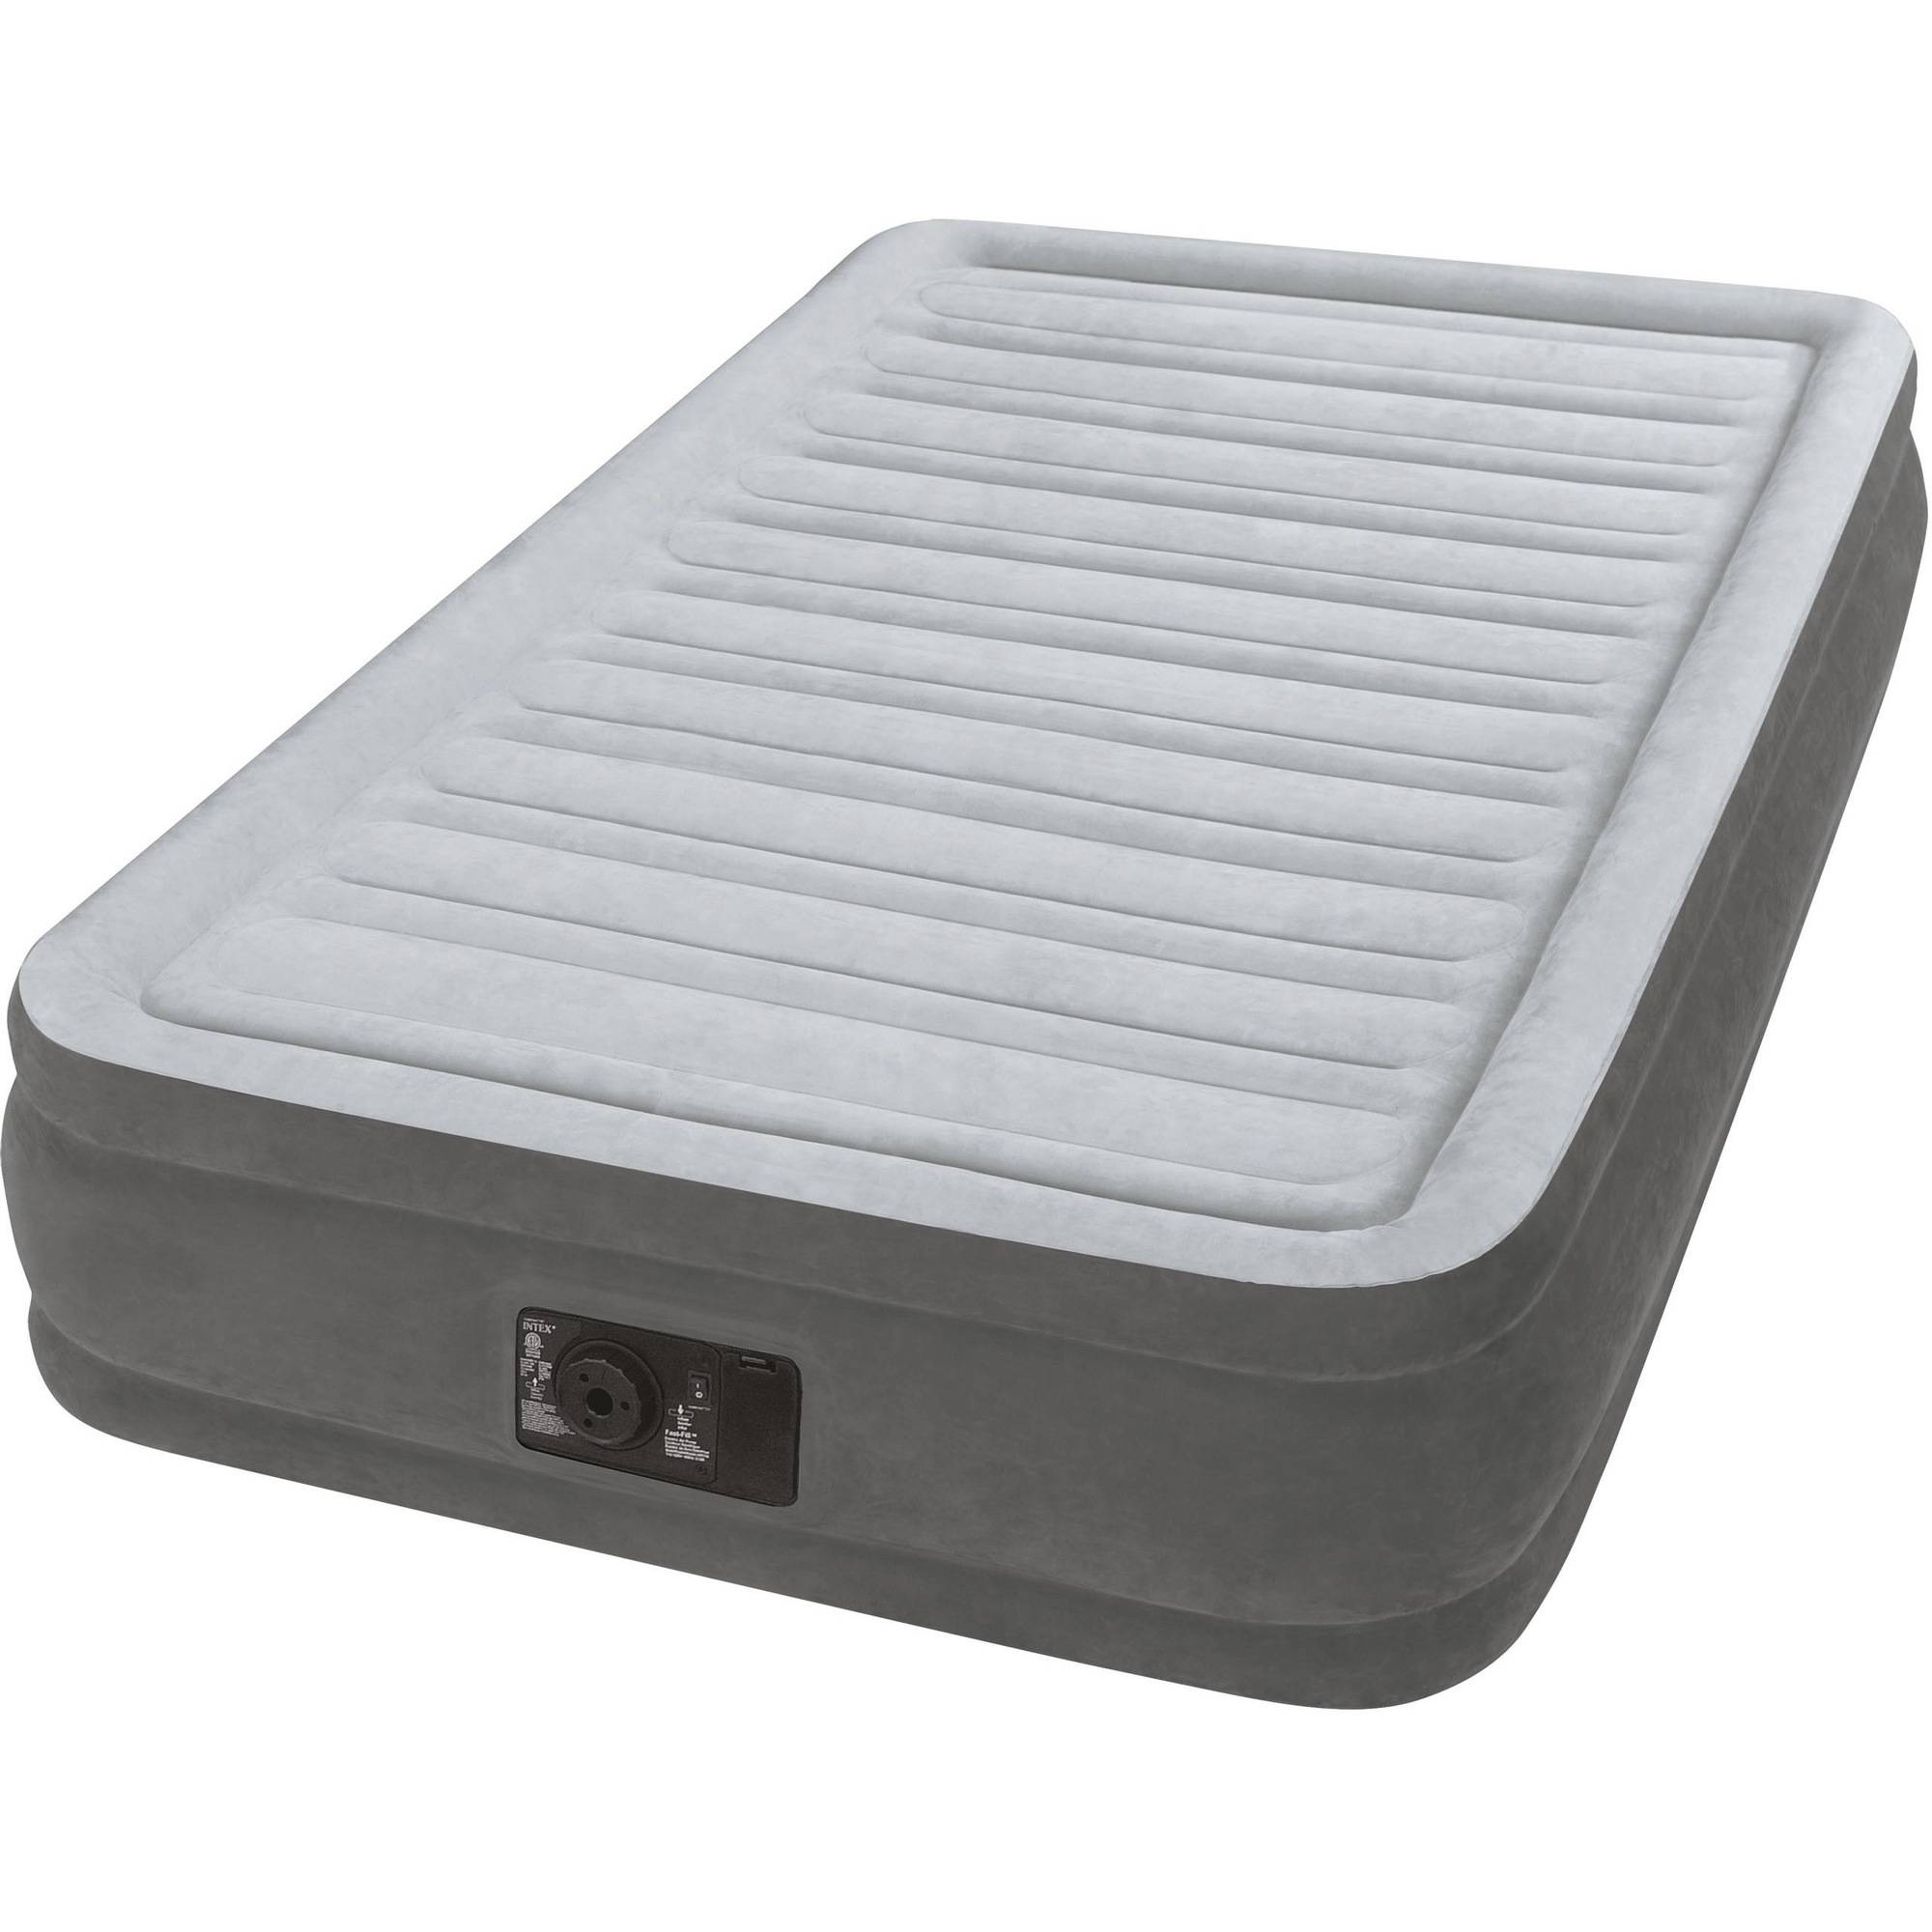 walmart air mattress prices Intex Supreme Air Flow Bed Twin, PVC   Walmart.com walmart air mattress prices